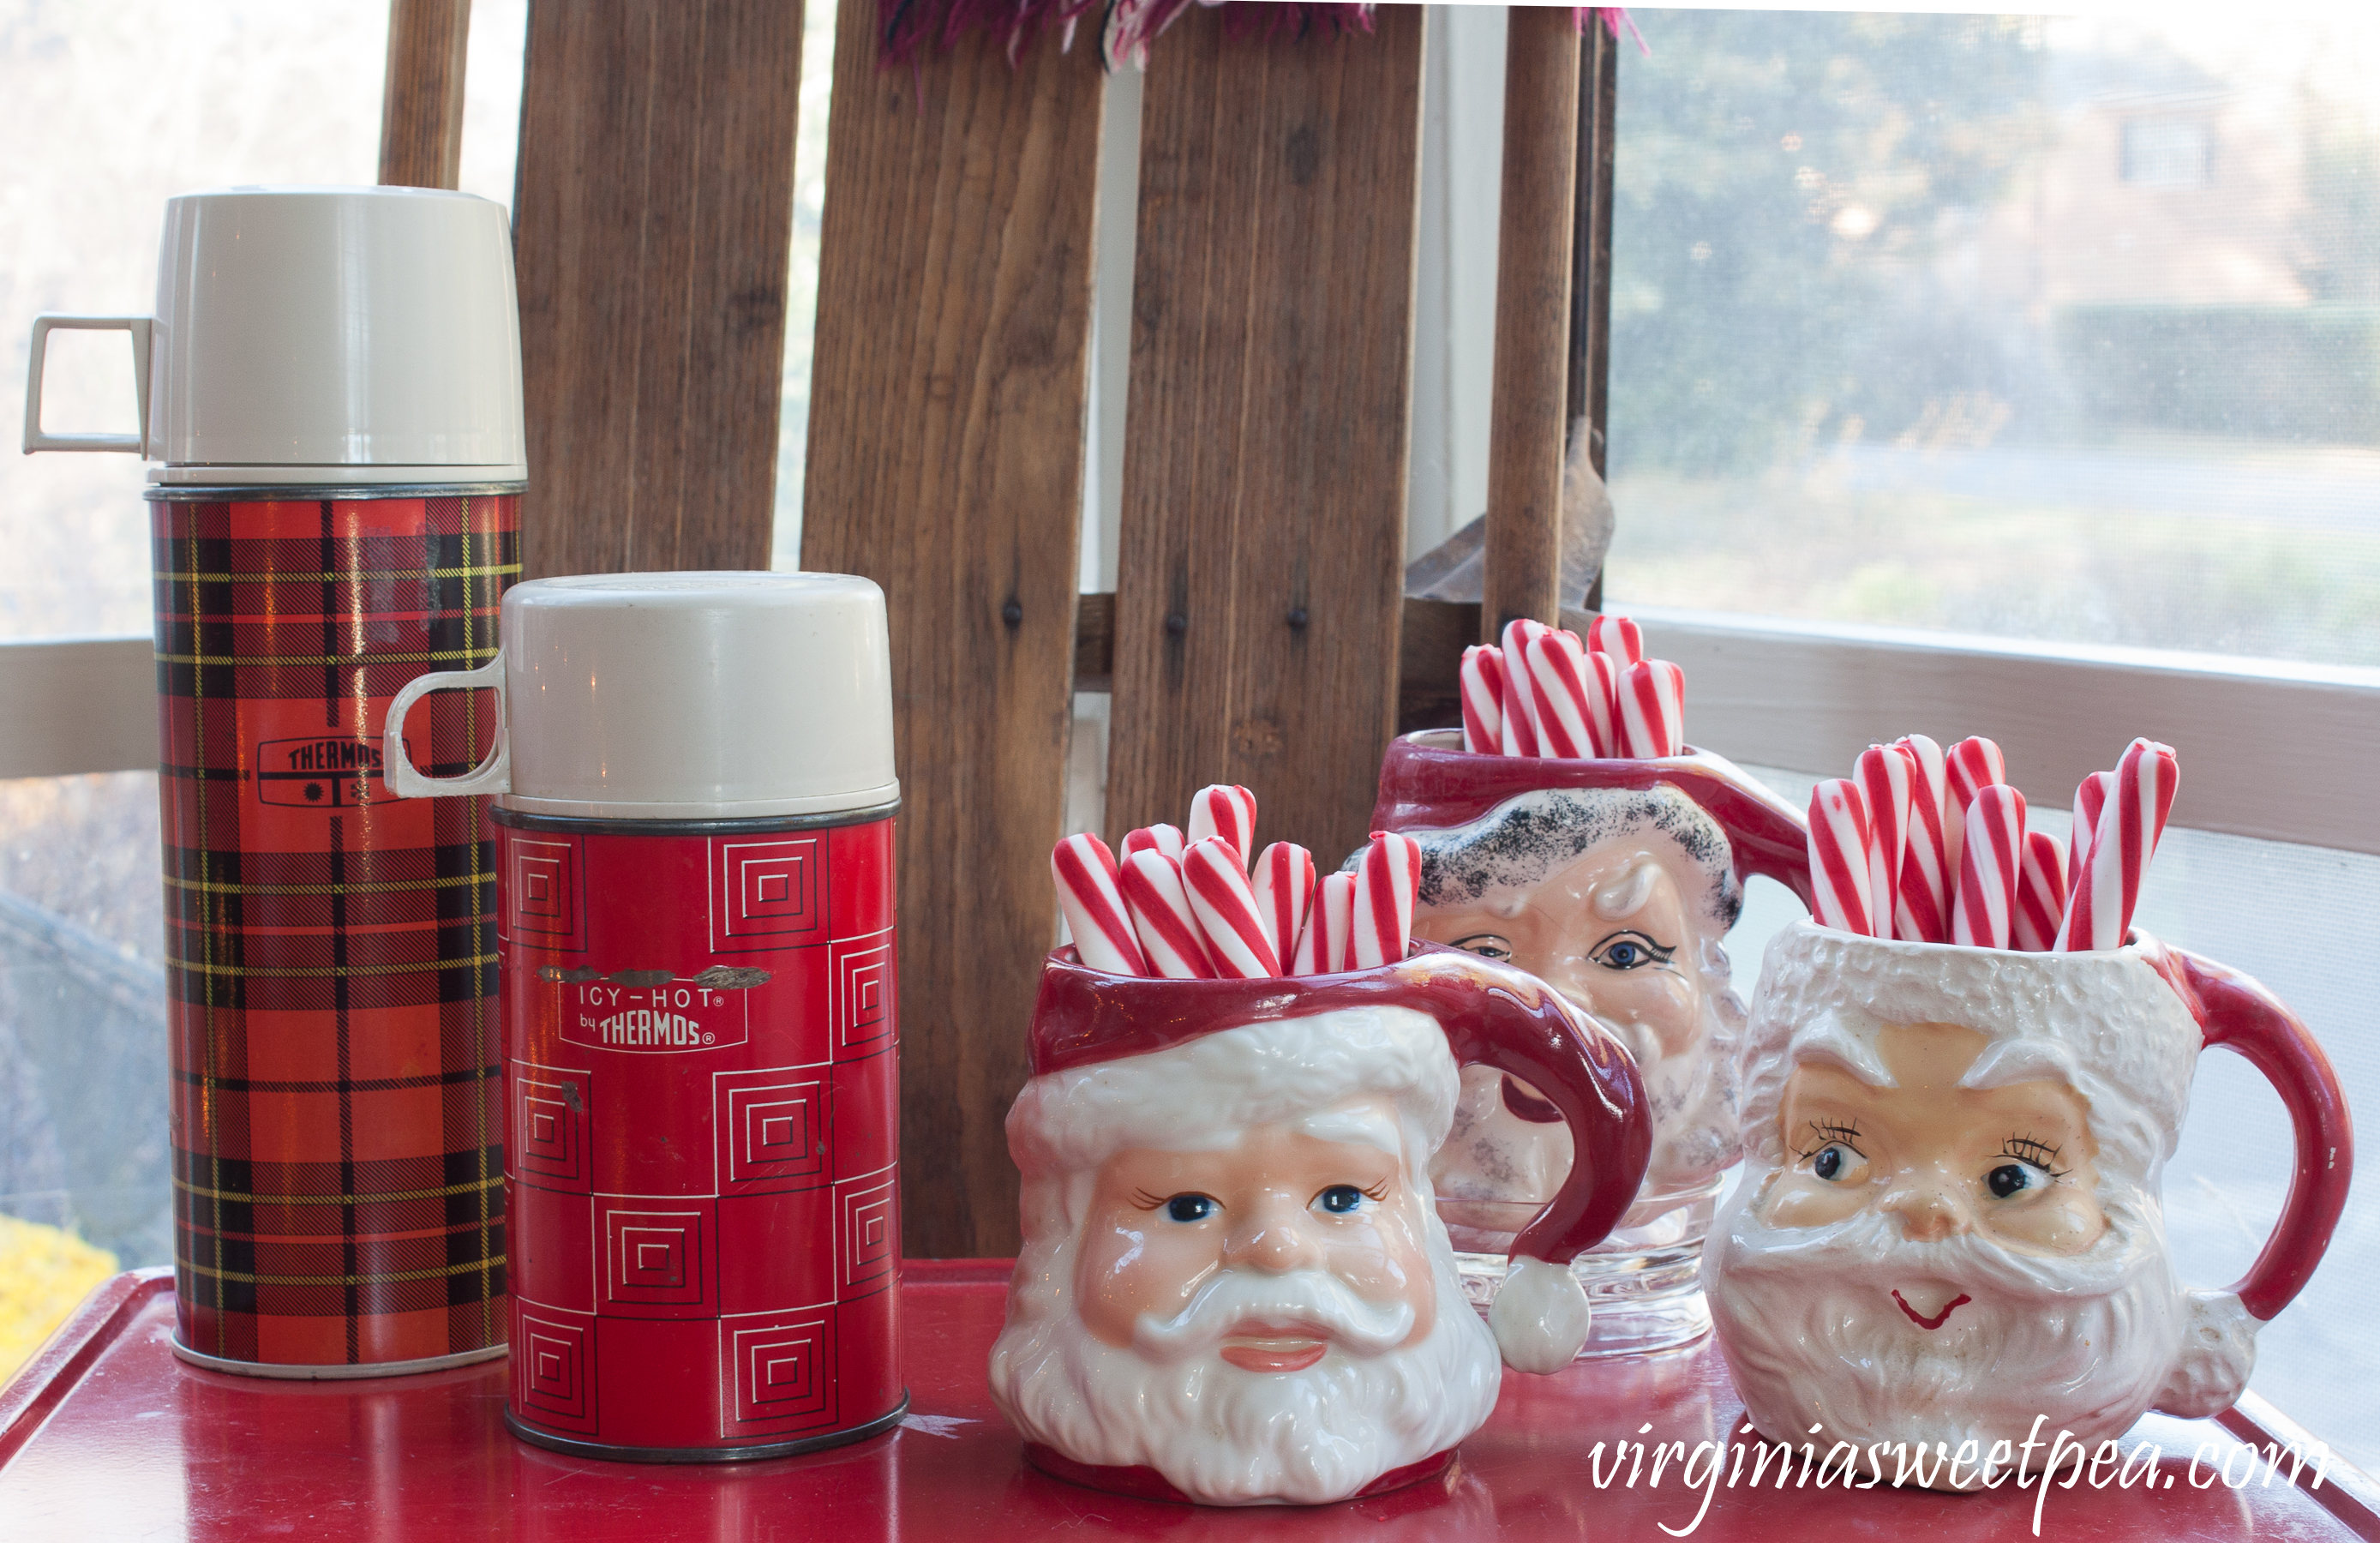 Christmas Porch Vignette - Vintage thermoses with Santa mugs. #christmas #christmasdecorations #christmasporch #vintage #vintagechristmas